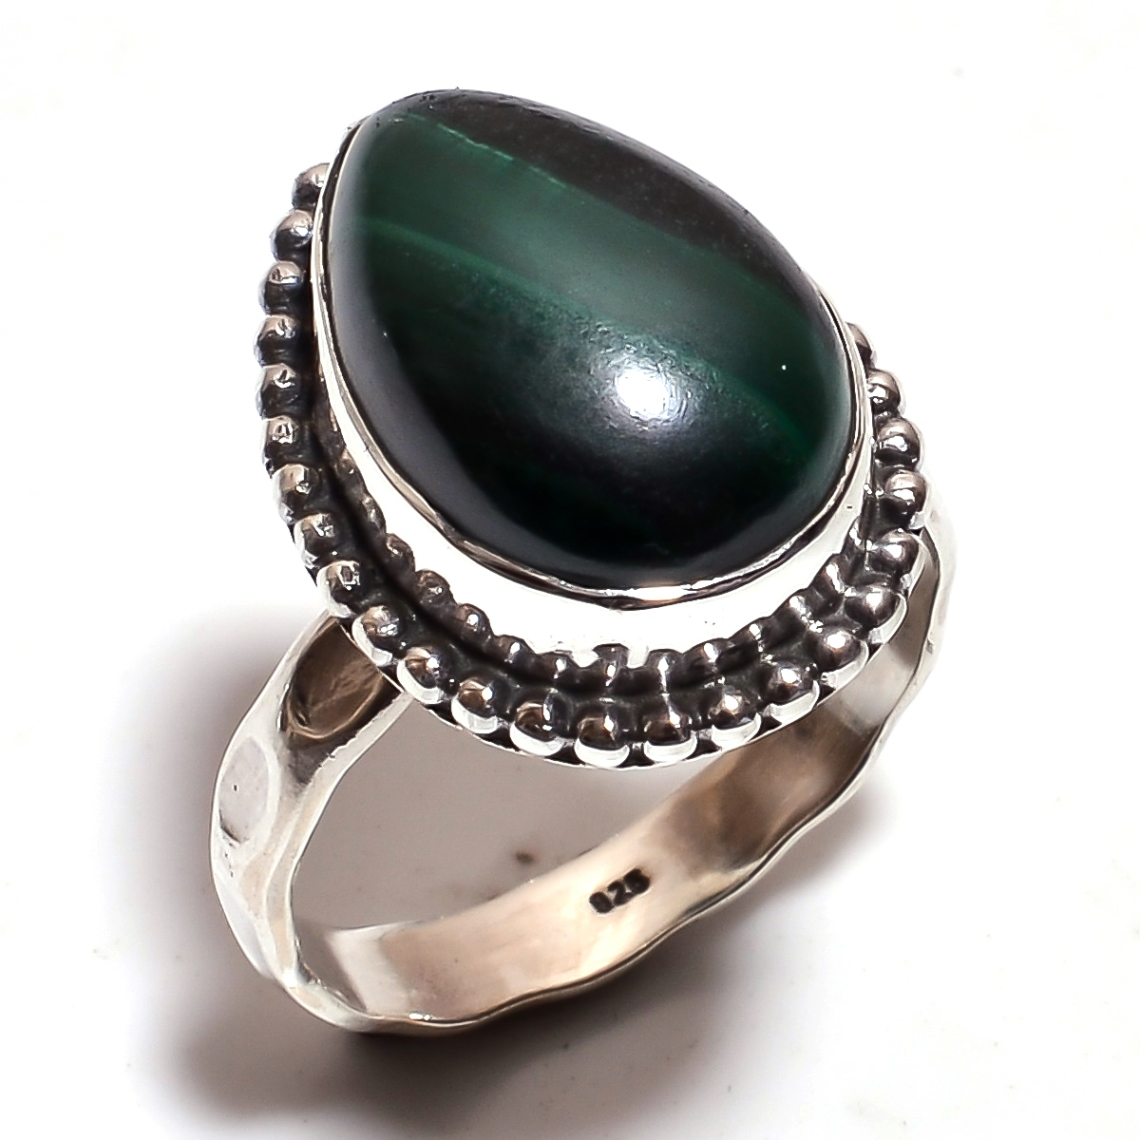 Malachite Gemstone 925 Sterling Silver Ring Size 6